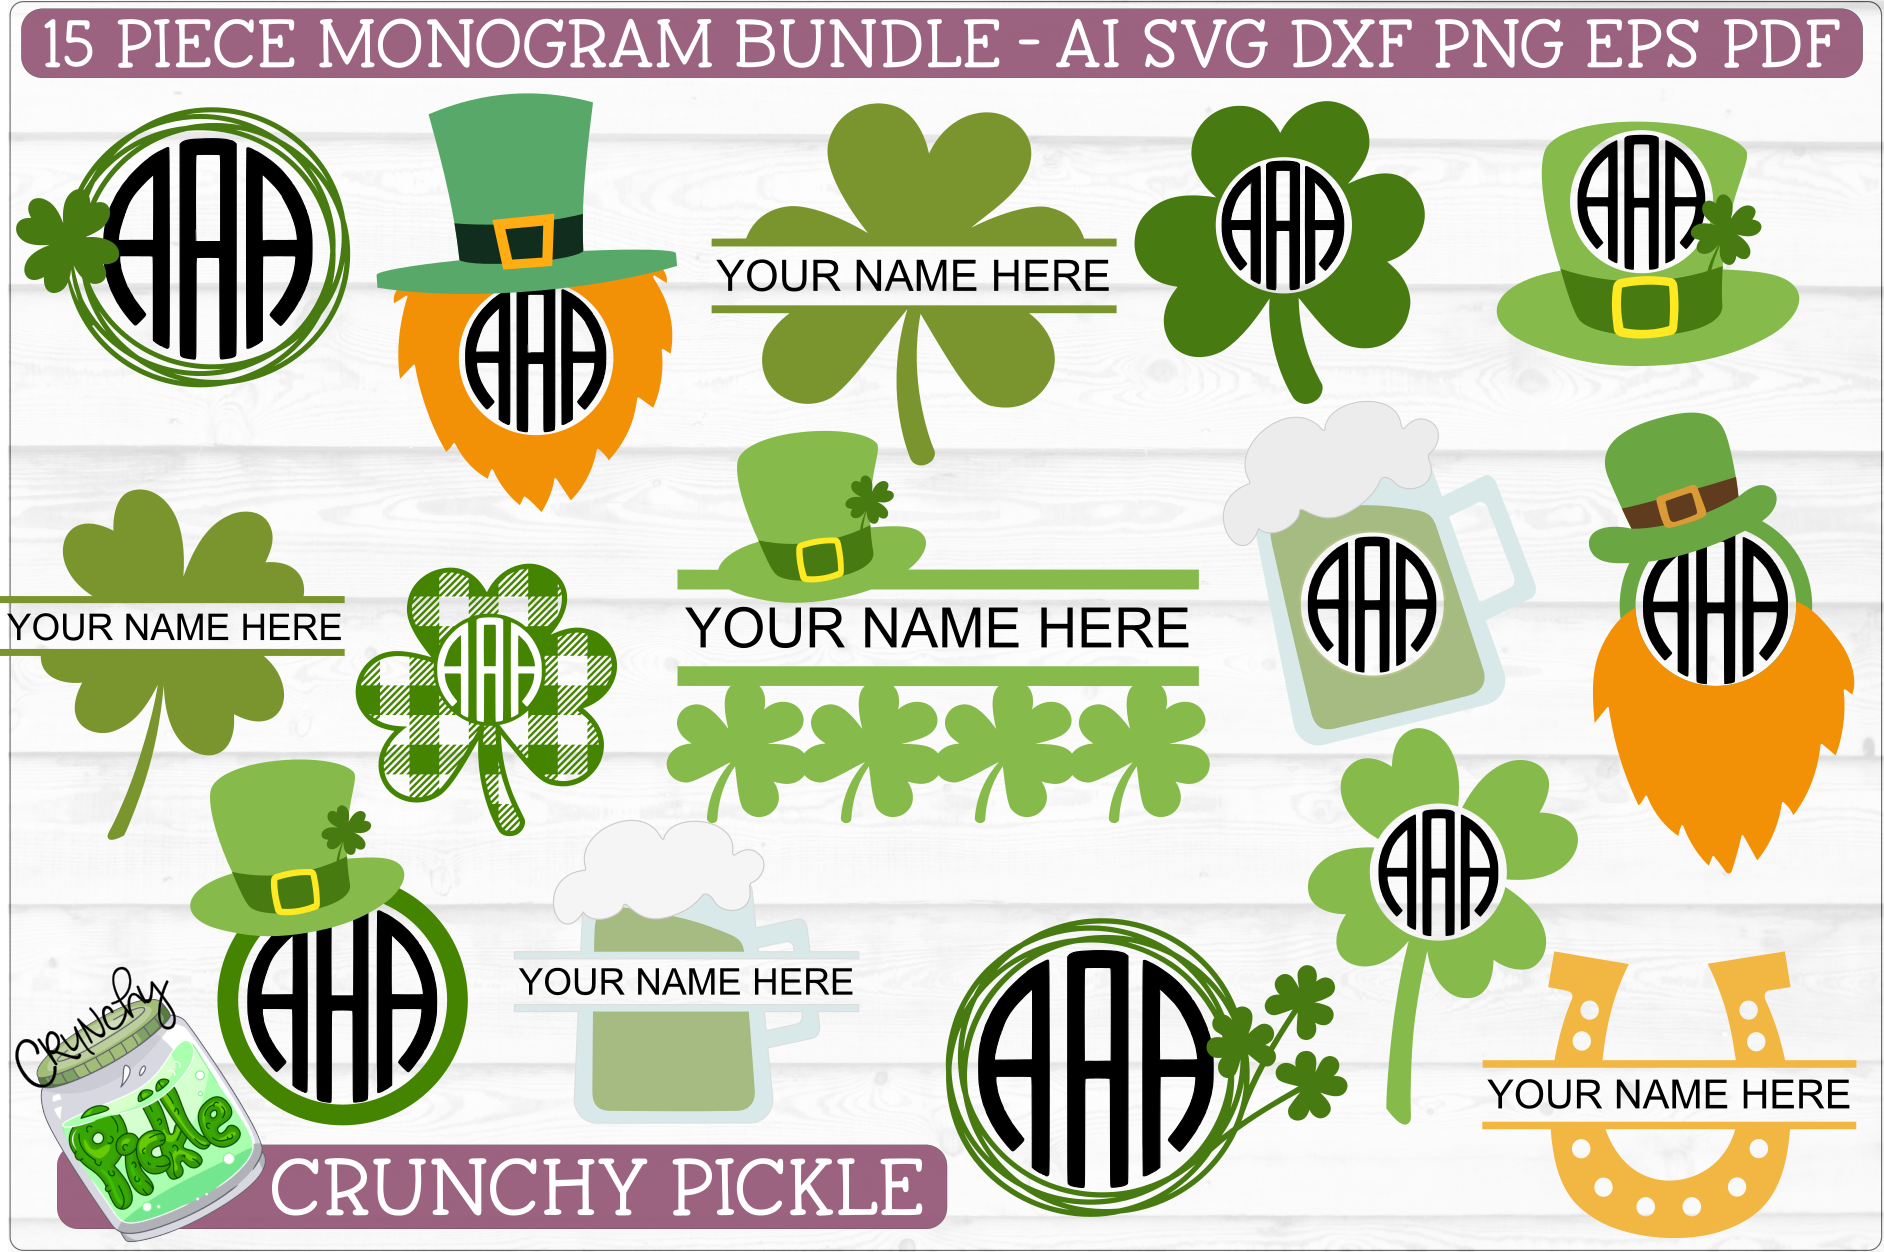 St Paddy Monograms - St Patrick's Day SVG File Bundle example image 1